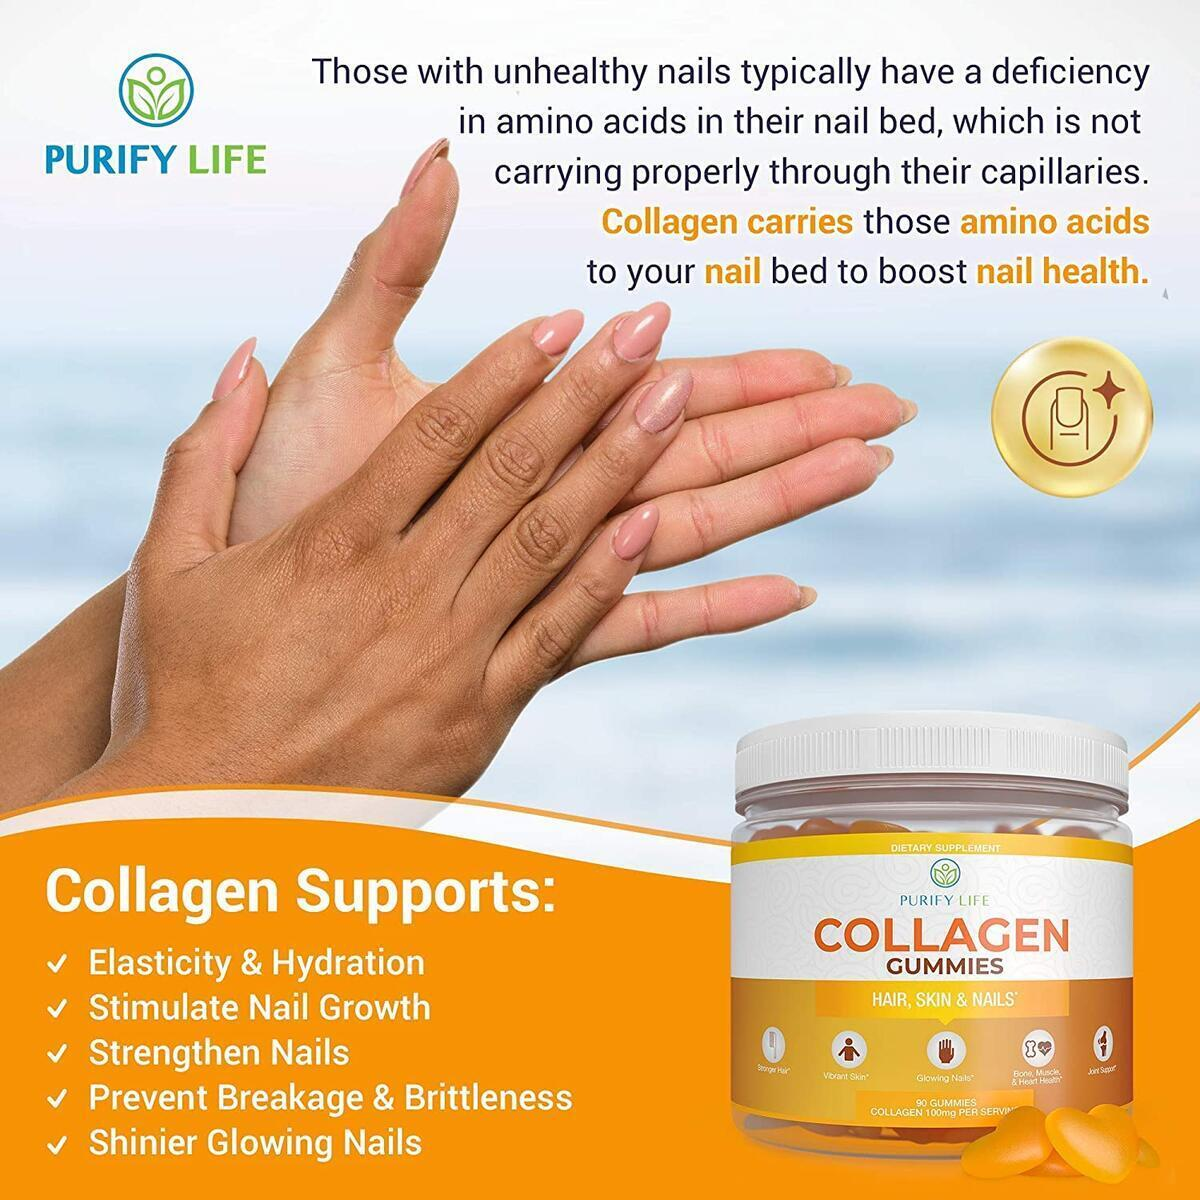 Collagen Gummies for Men and Women's Hair, Skin, and Nails (Bulk - 90 Gummies) Joint Care Vitamin for Anti-Aging and Pore Reducer - Hydrolyzed Non Gelatin Non-GMO All Natural Supplement